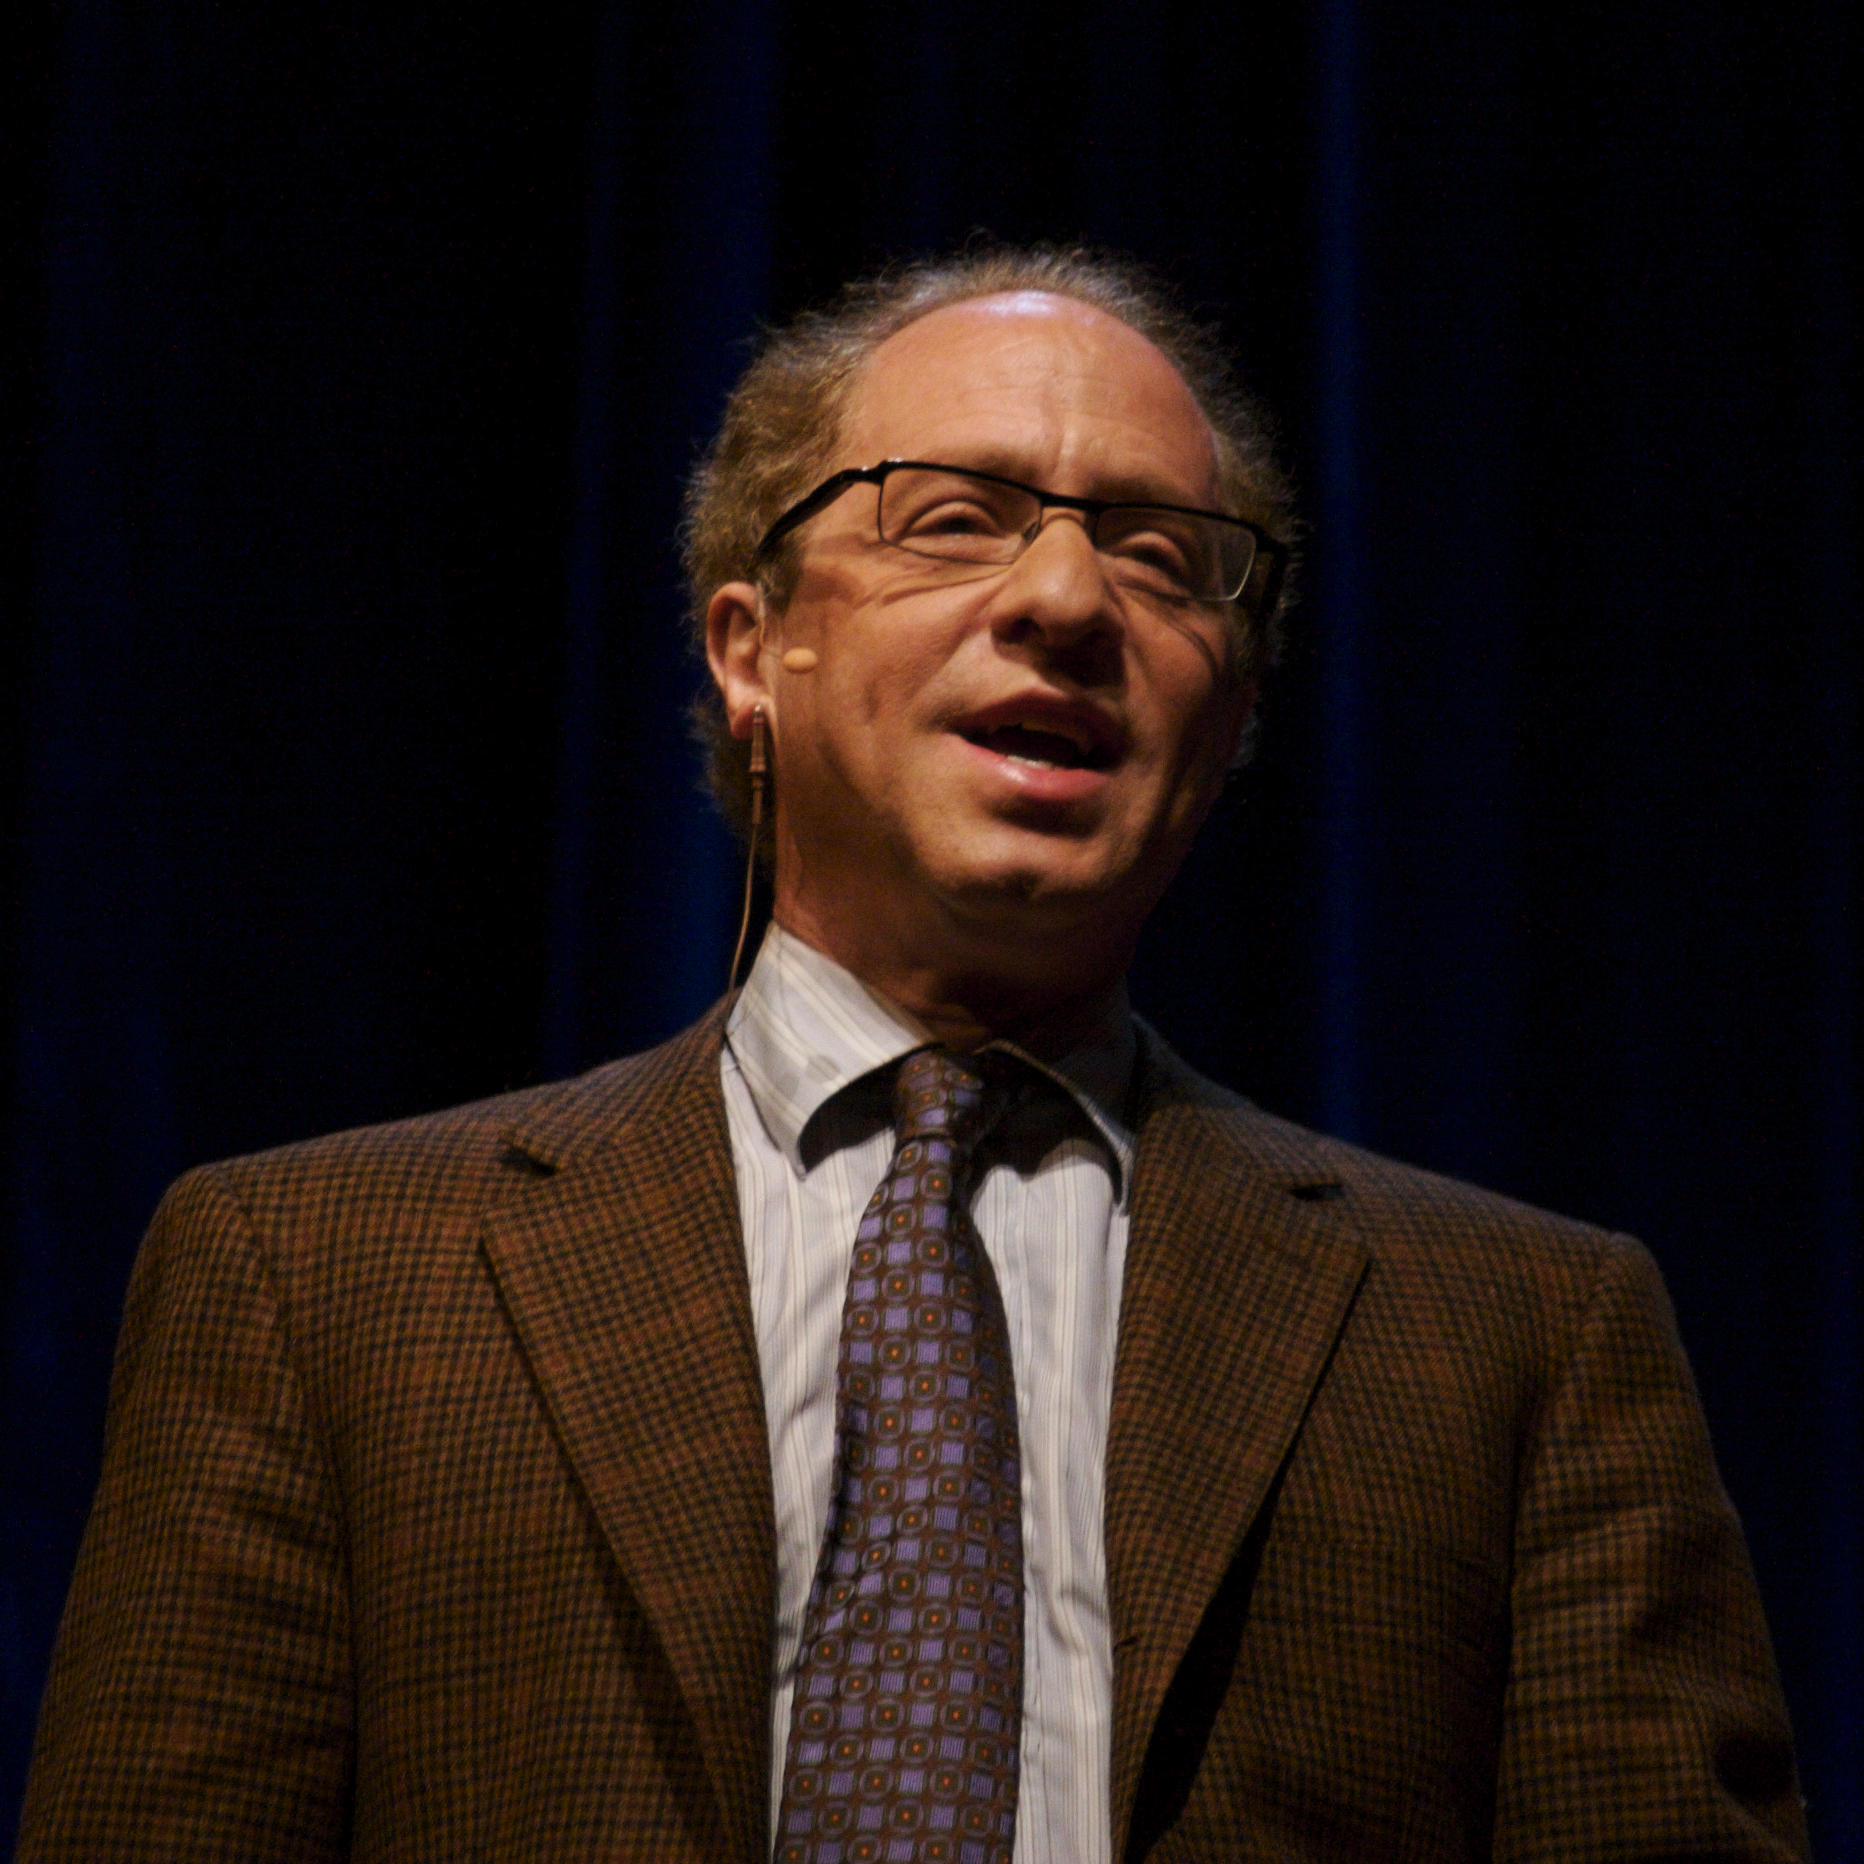 http://upload.wikimedia.org/wikipedia/commons/9/98/Raymond_Kurzweil%2C_Stanford_2006_%28square_crop%29.jpg